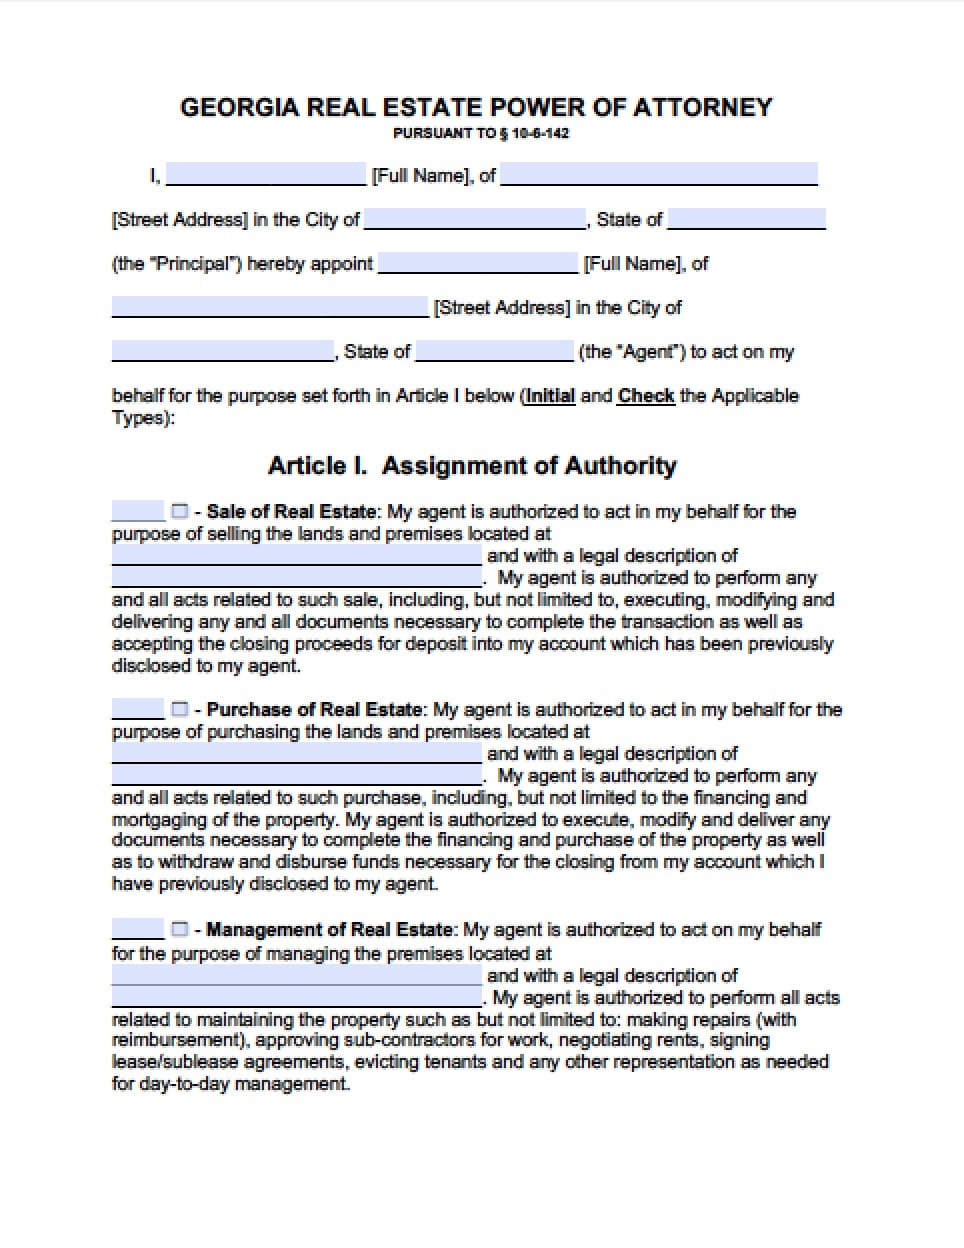 Georgia Real Estate ONLY Power of Attorney Form - Power of Attorney on power of appointment form, acknowledgment form, contract form, easement form,